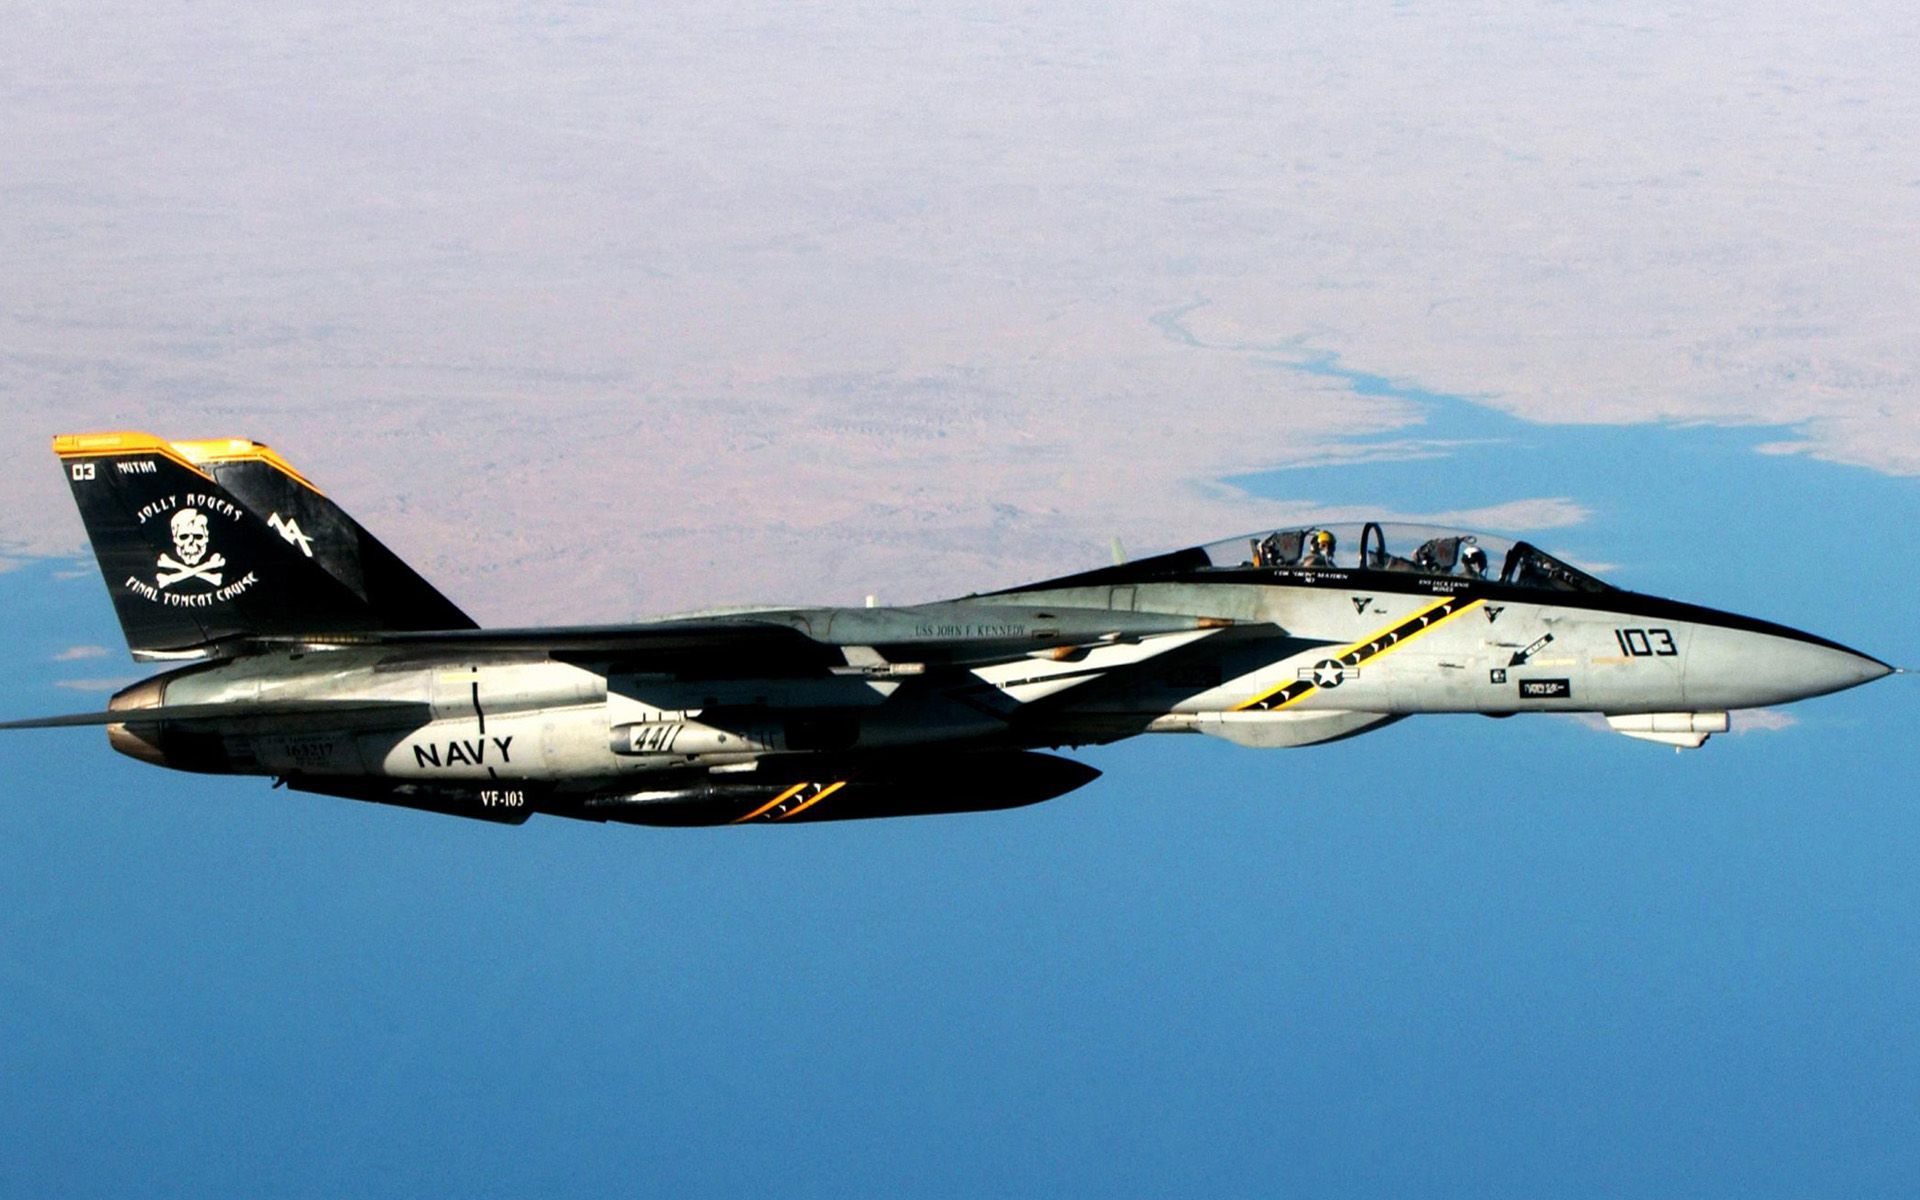 F 14 Tomcat Jolly Rogers Wallpaper Fighter Jets Military Aircraft Aircraft